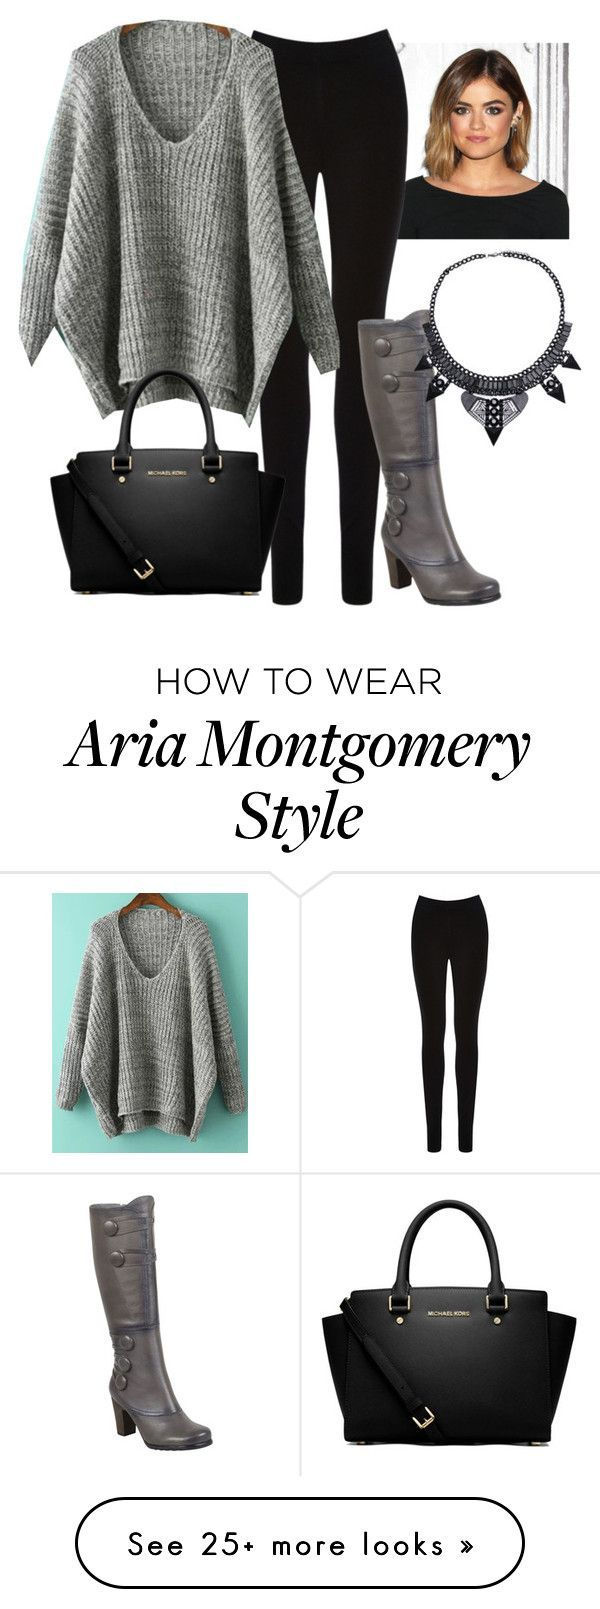 Aria Montgomery by pllplease on Polyvore featuring Oasis, Miz Mooz and MICHAEL Michael Kors